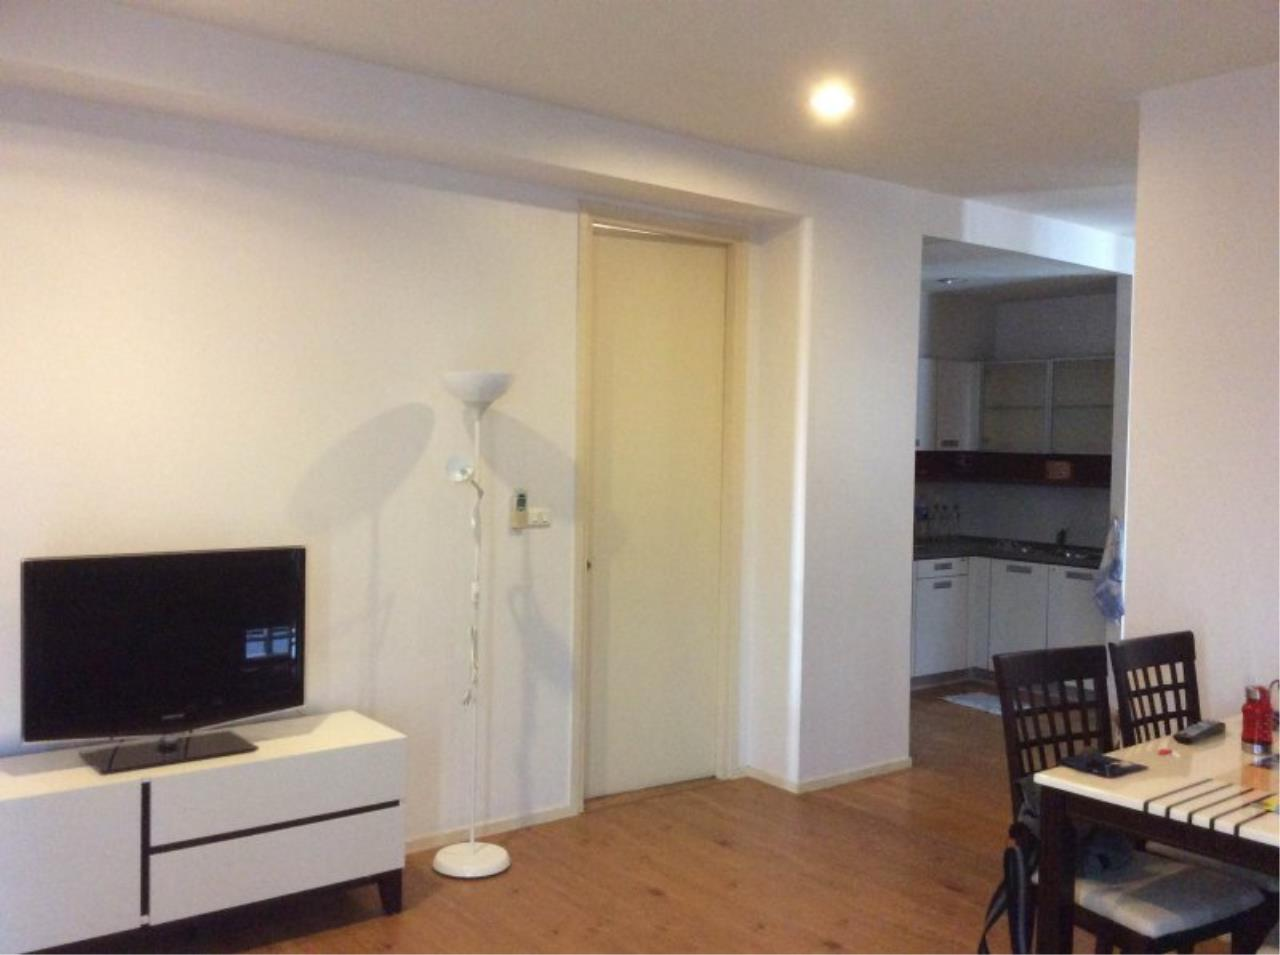 Piri Property Agency's Bright 2 Bedrooms in the Amanta Ratchada Condo for rent on high floor 5